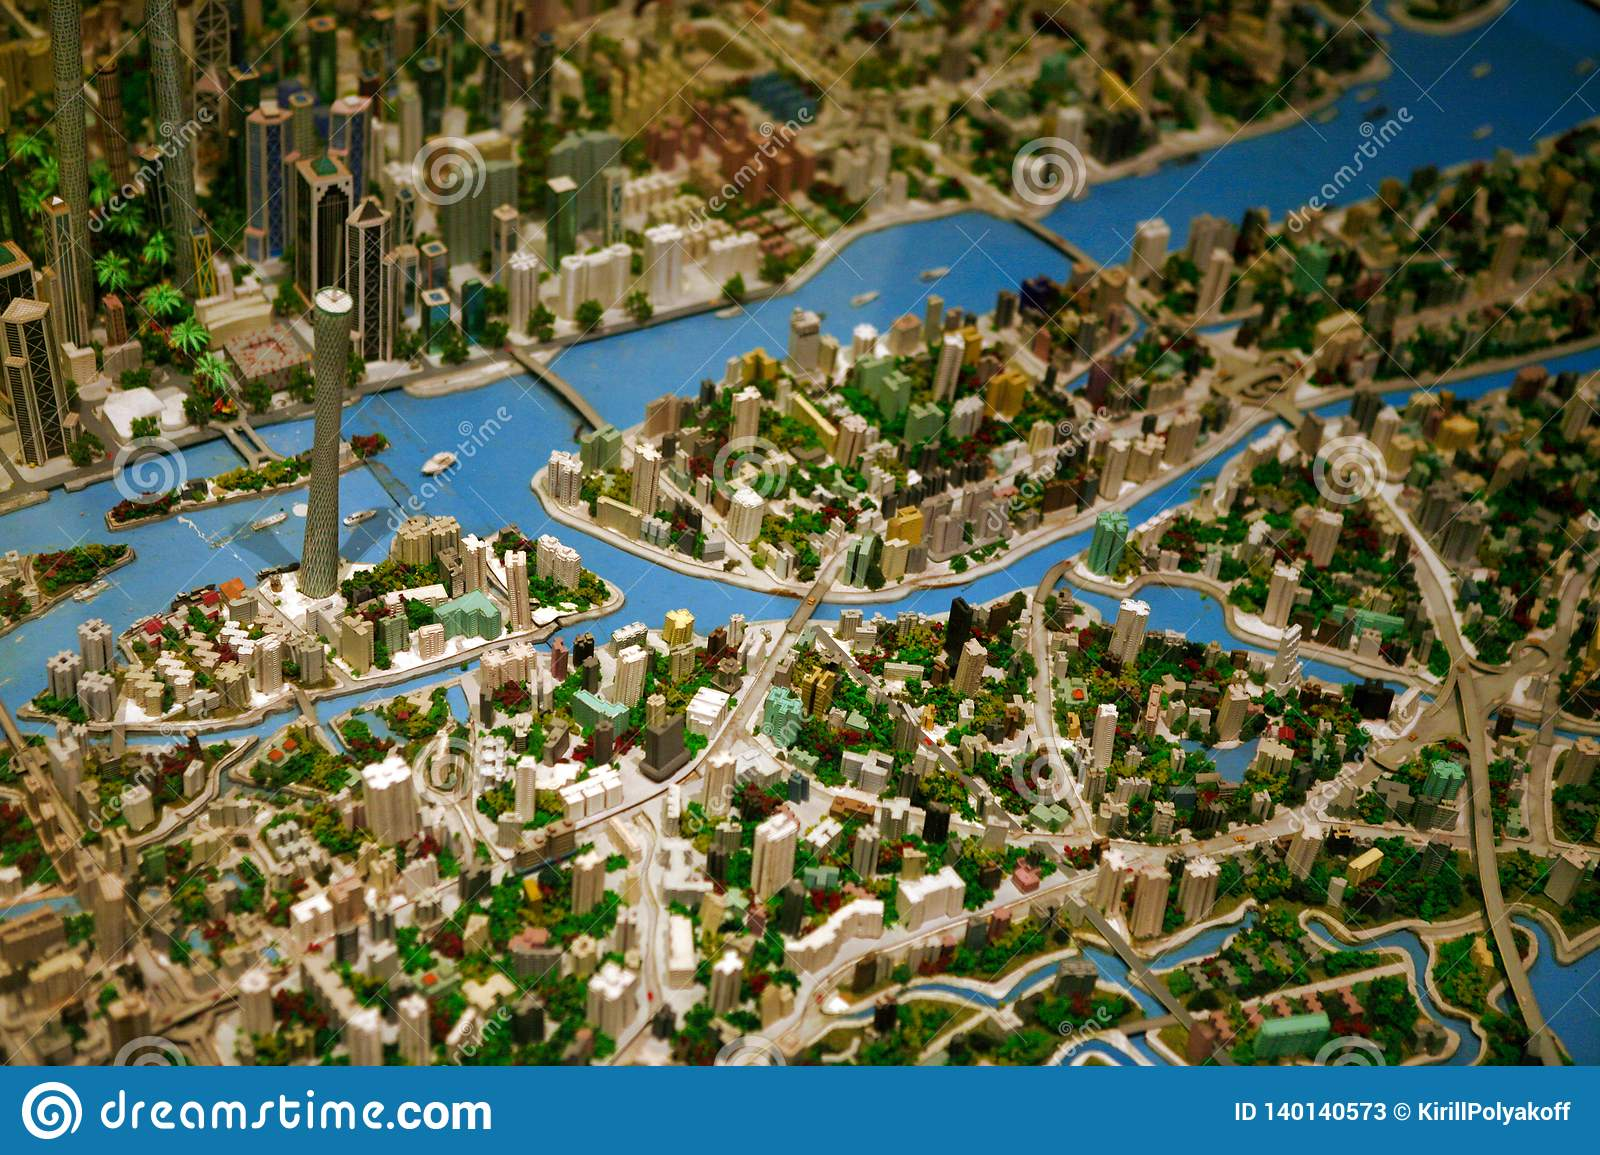 Guangzhou, China - July 11, 2018: Large-scale layout Architectural model of the city of Guangzhou.